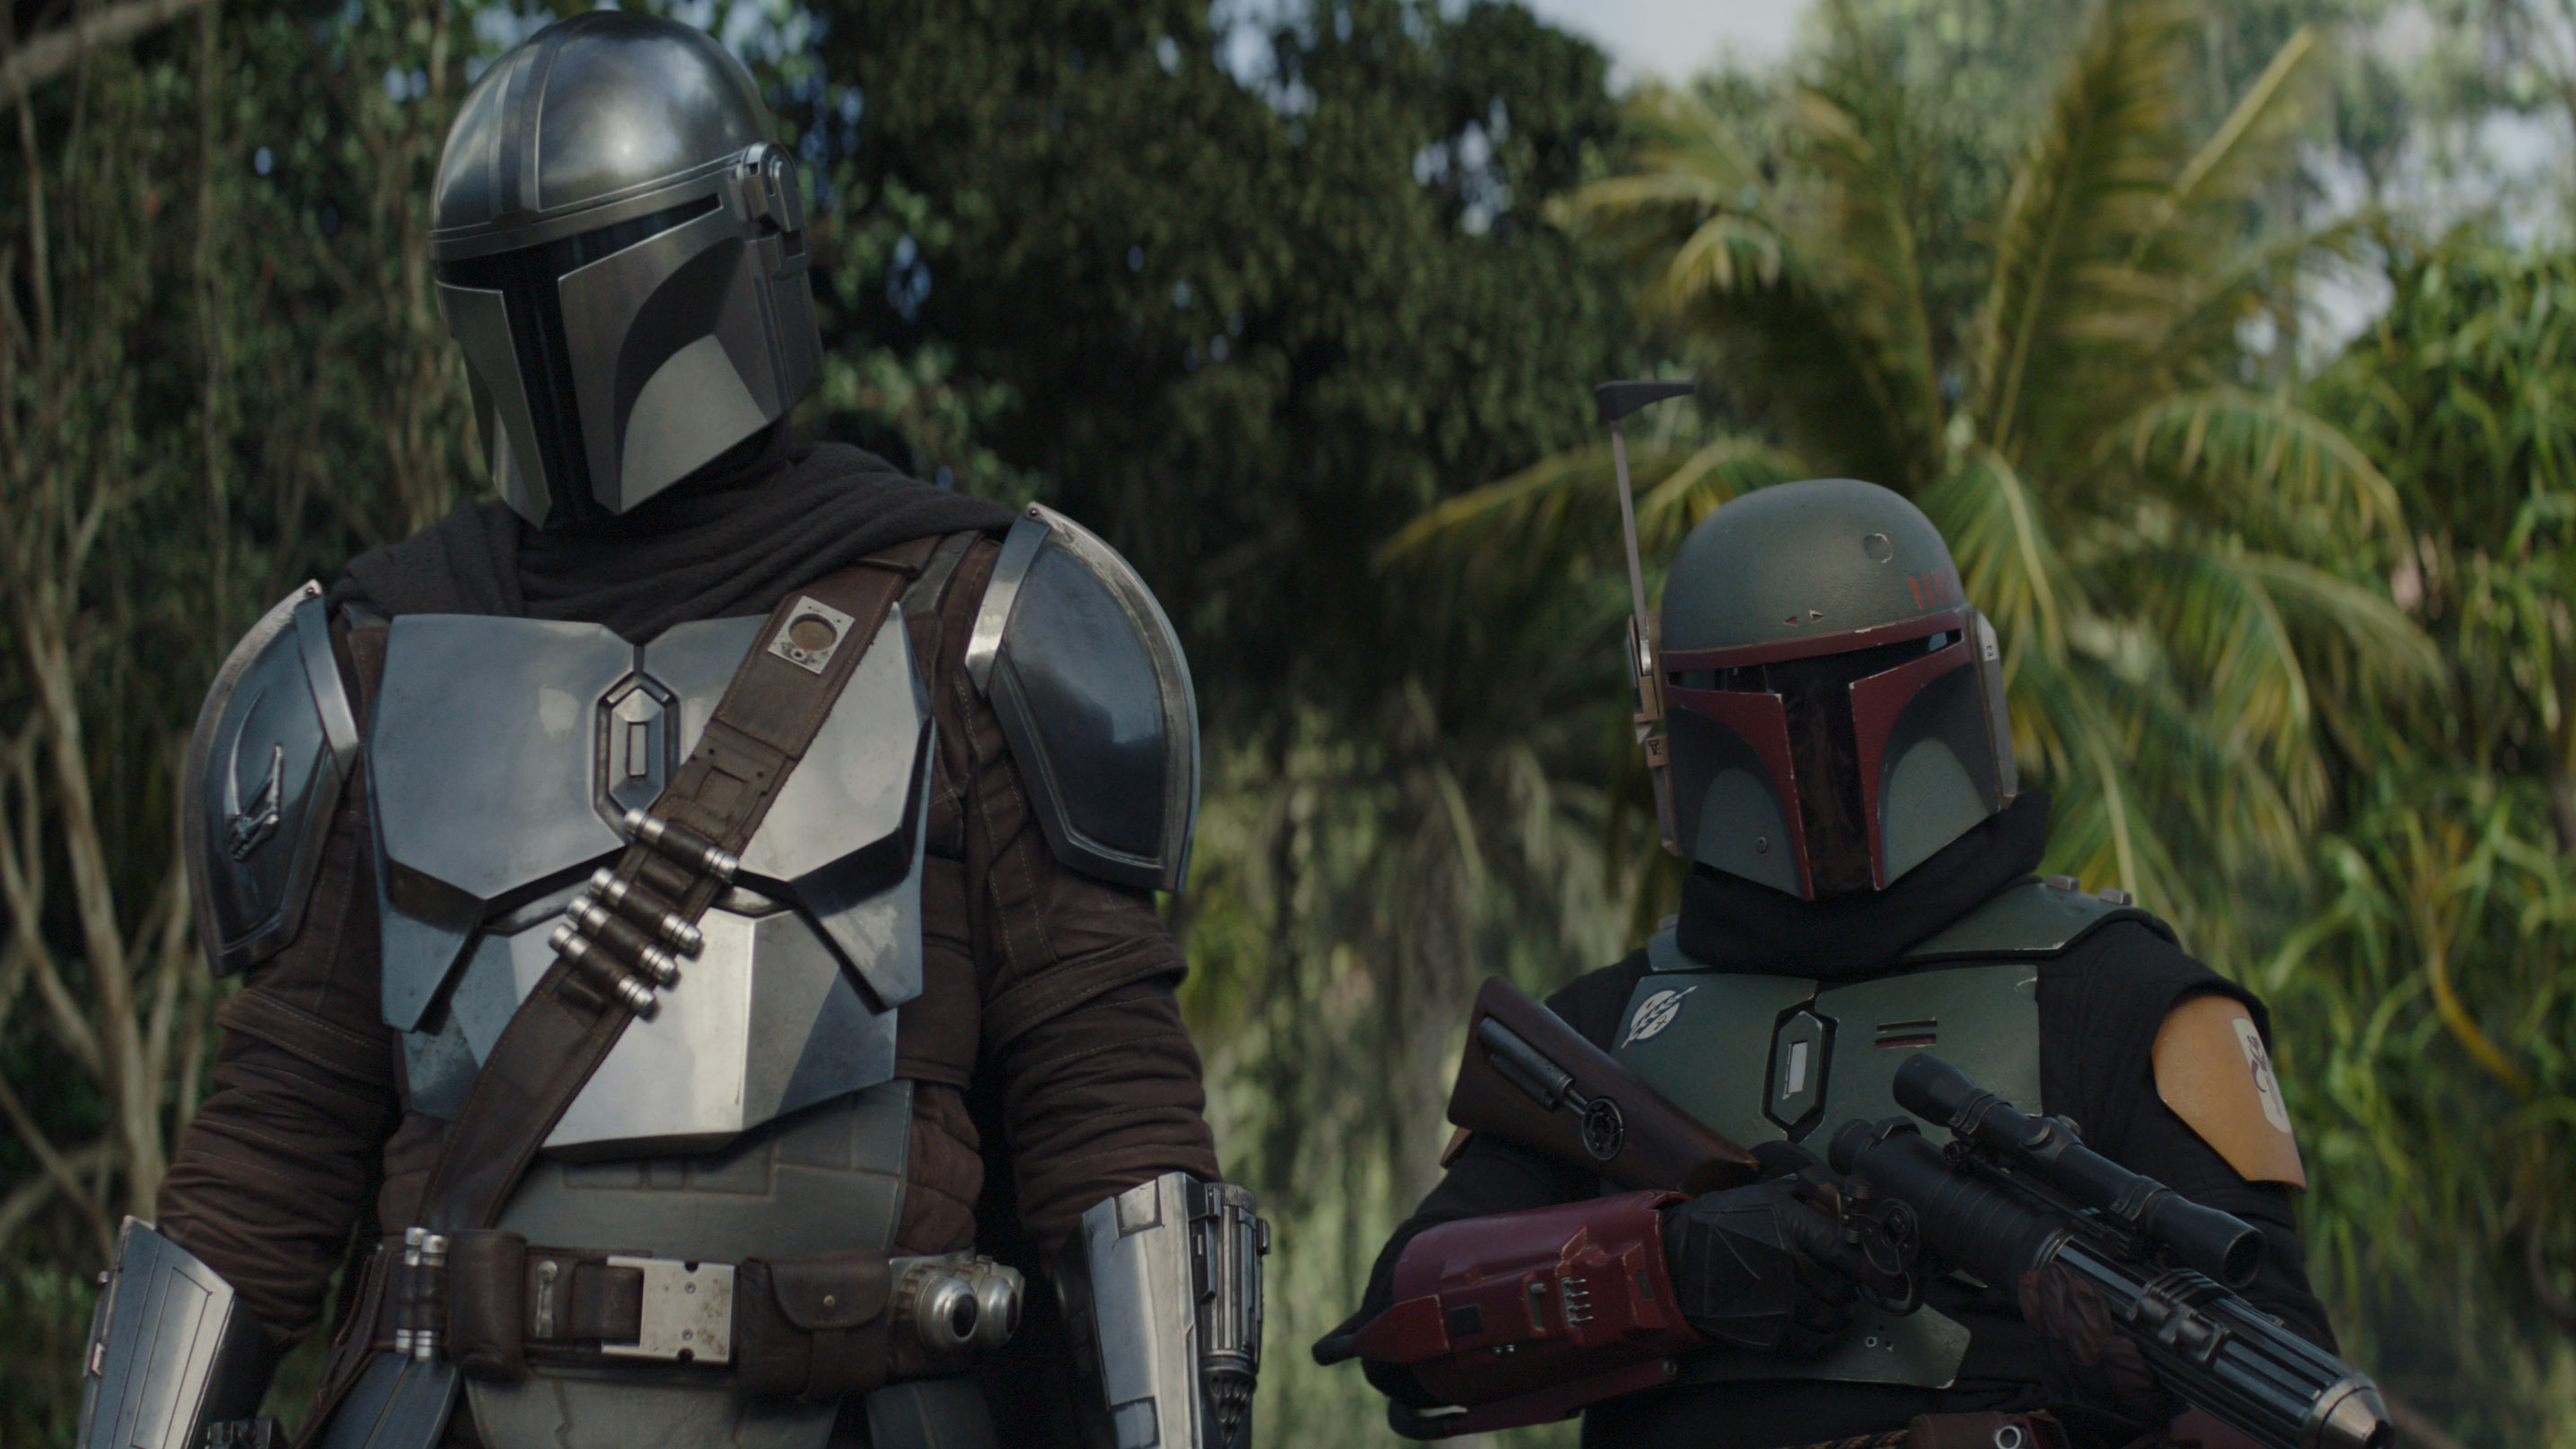 When Is The Mandalorian Season 2 Episode 8 Released On Disney Plus Techradar